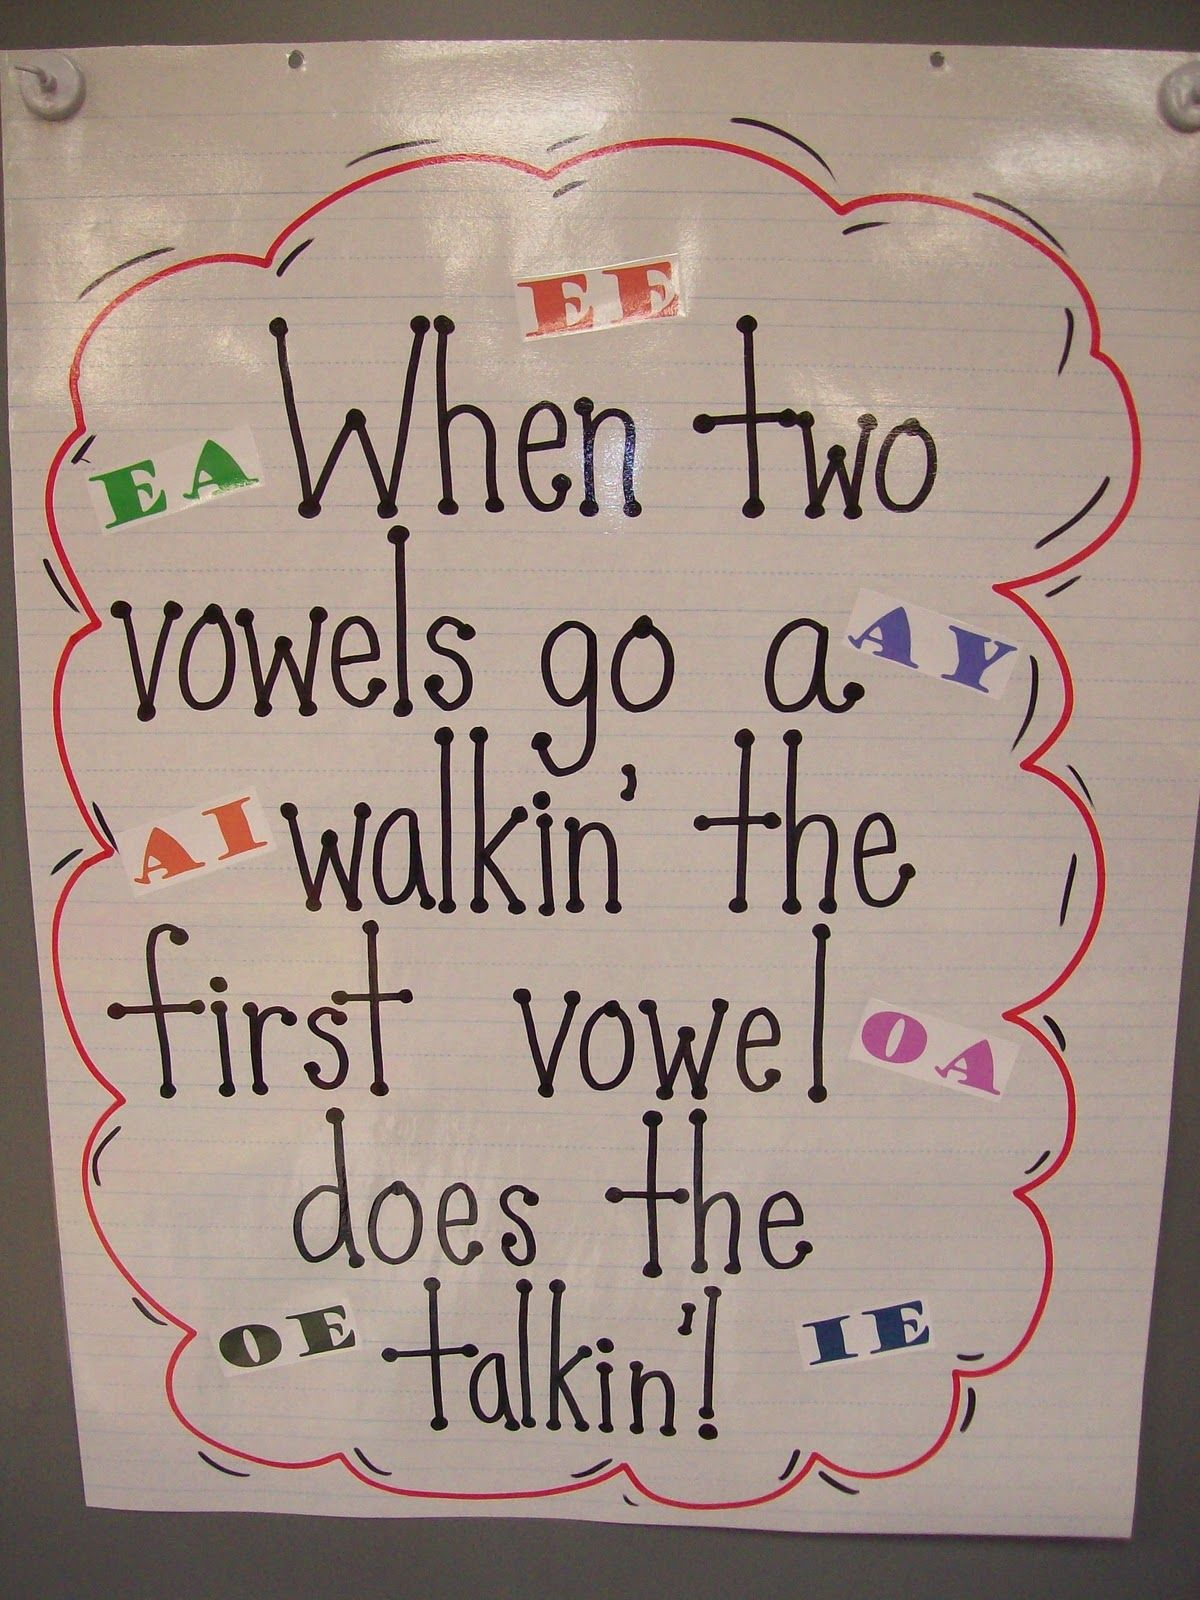 When Two Vowels Go Walking E First One Does The Talking